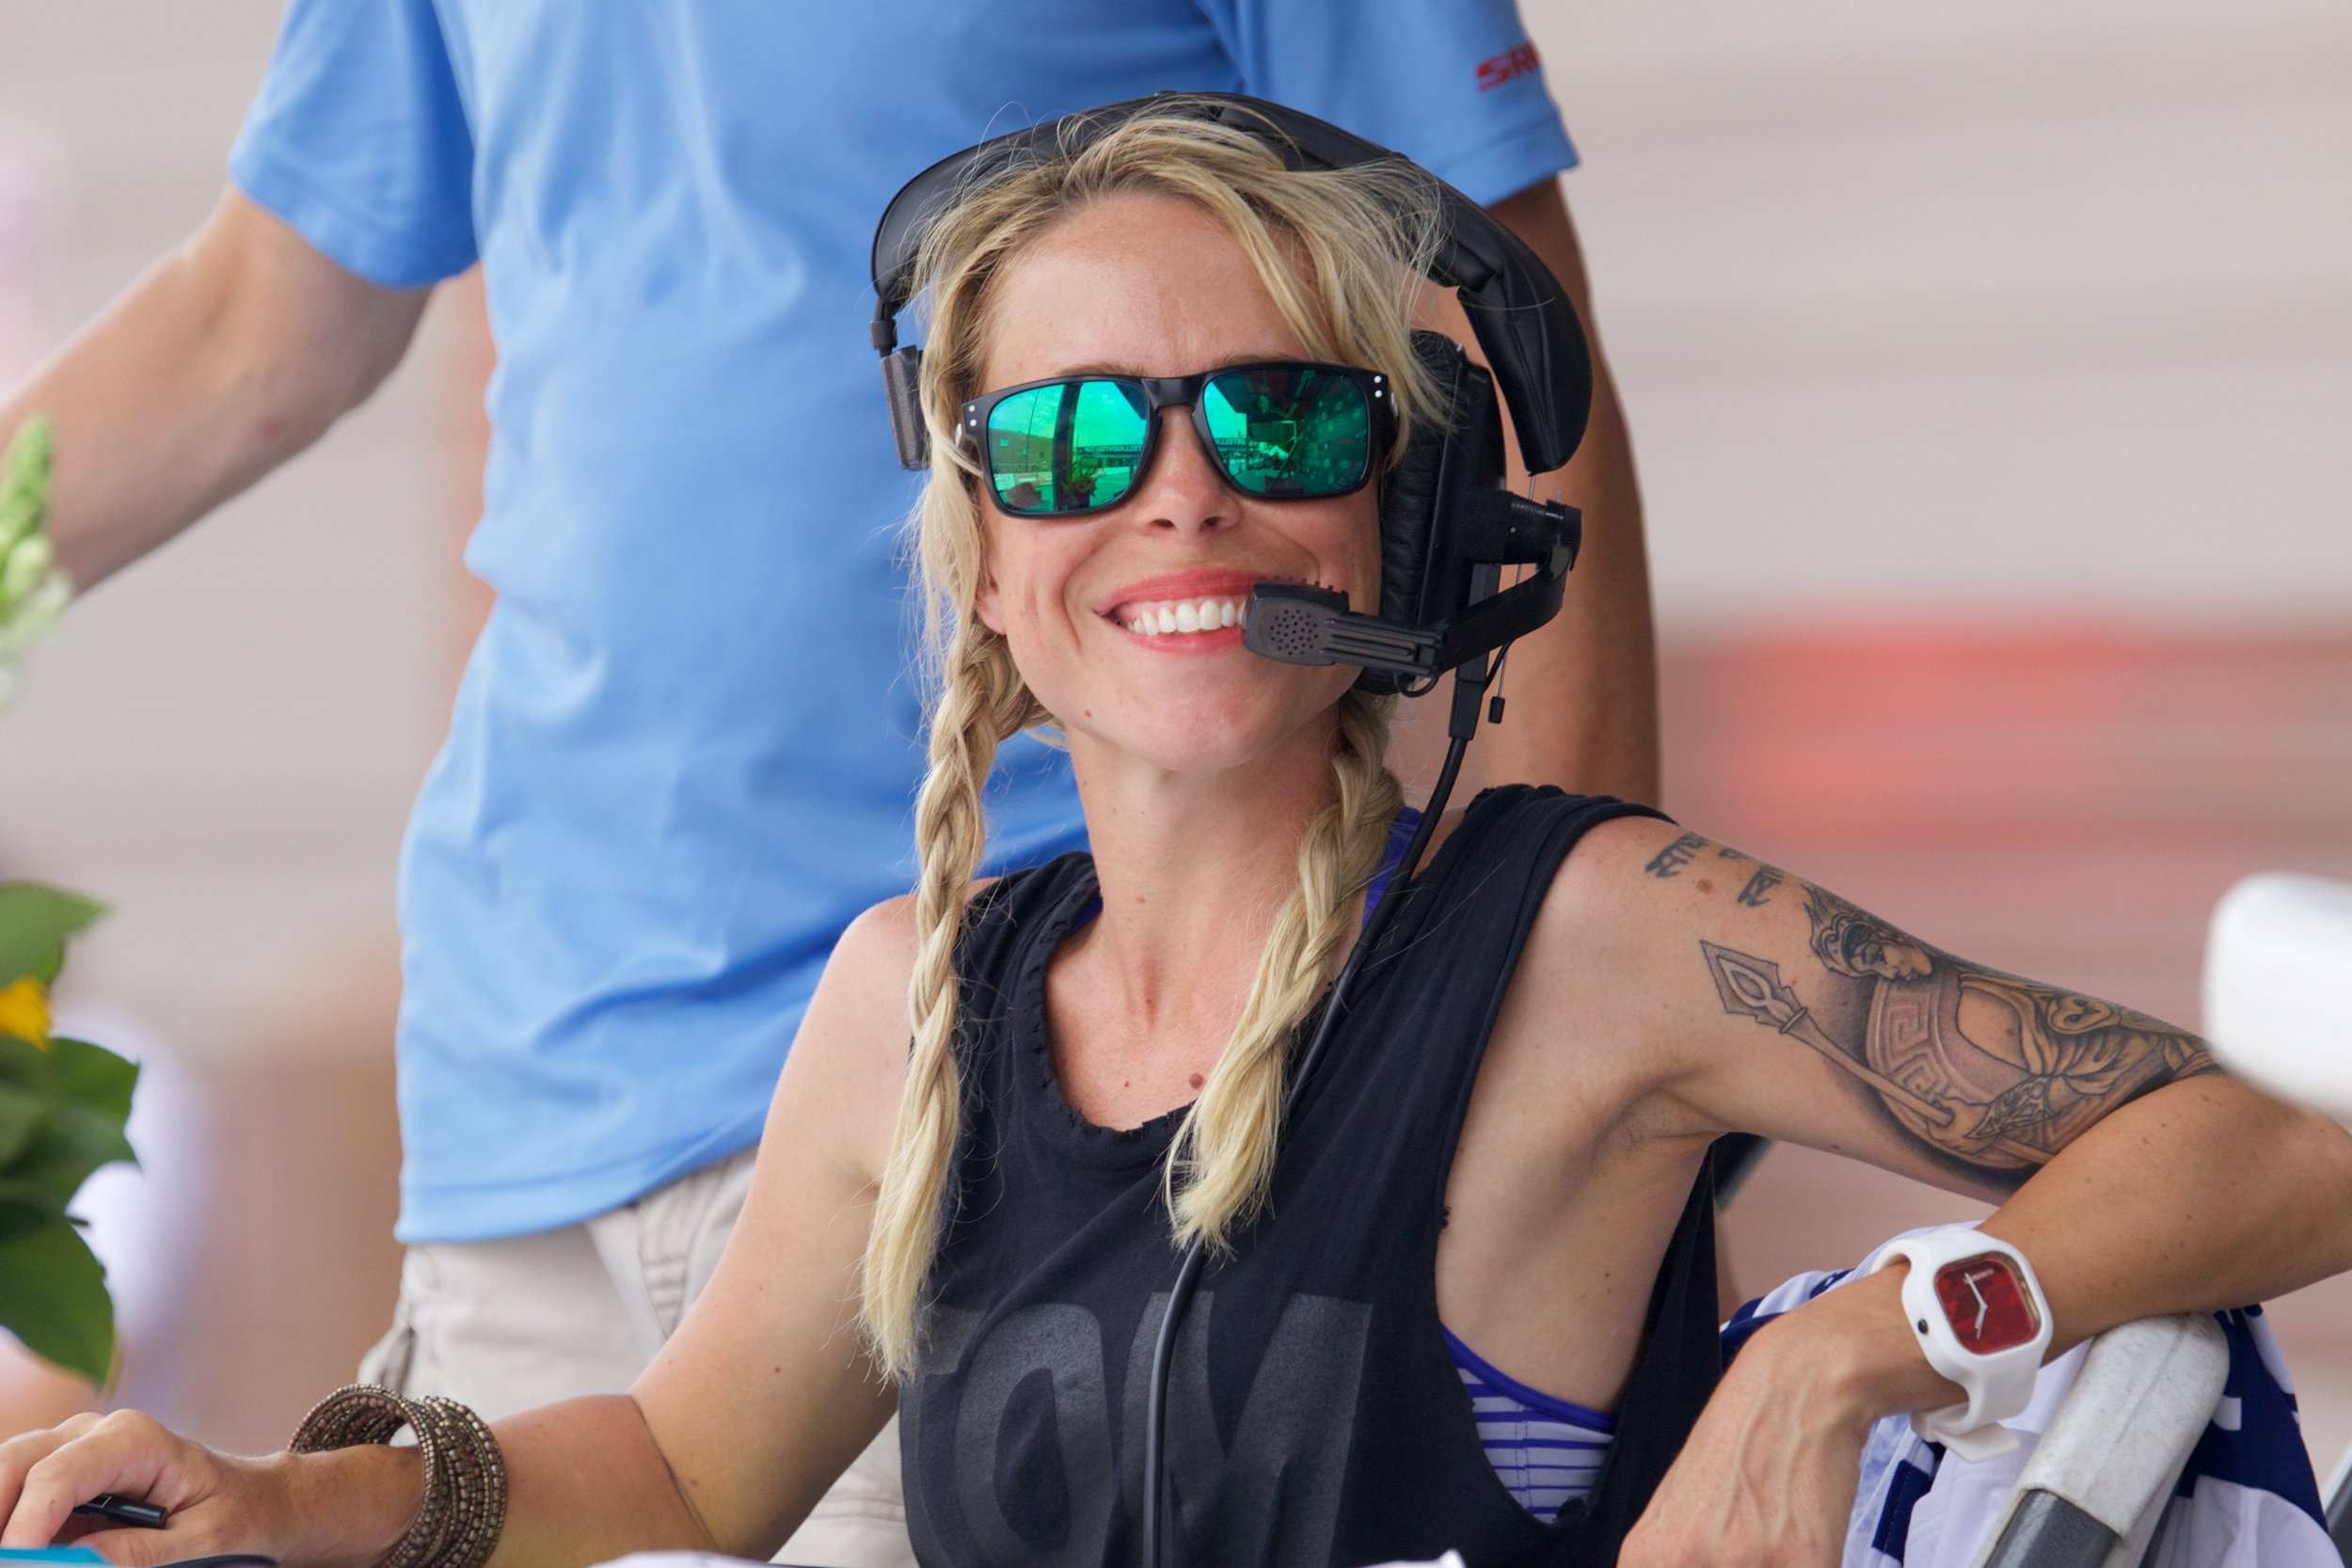 Stage Manager - The Intelligentsia Cup p/b by SRAM photo by SnowyMountain Photography